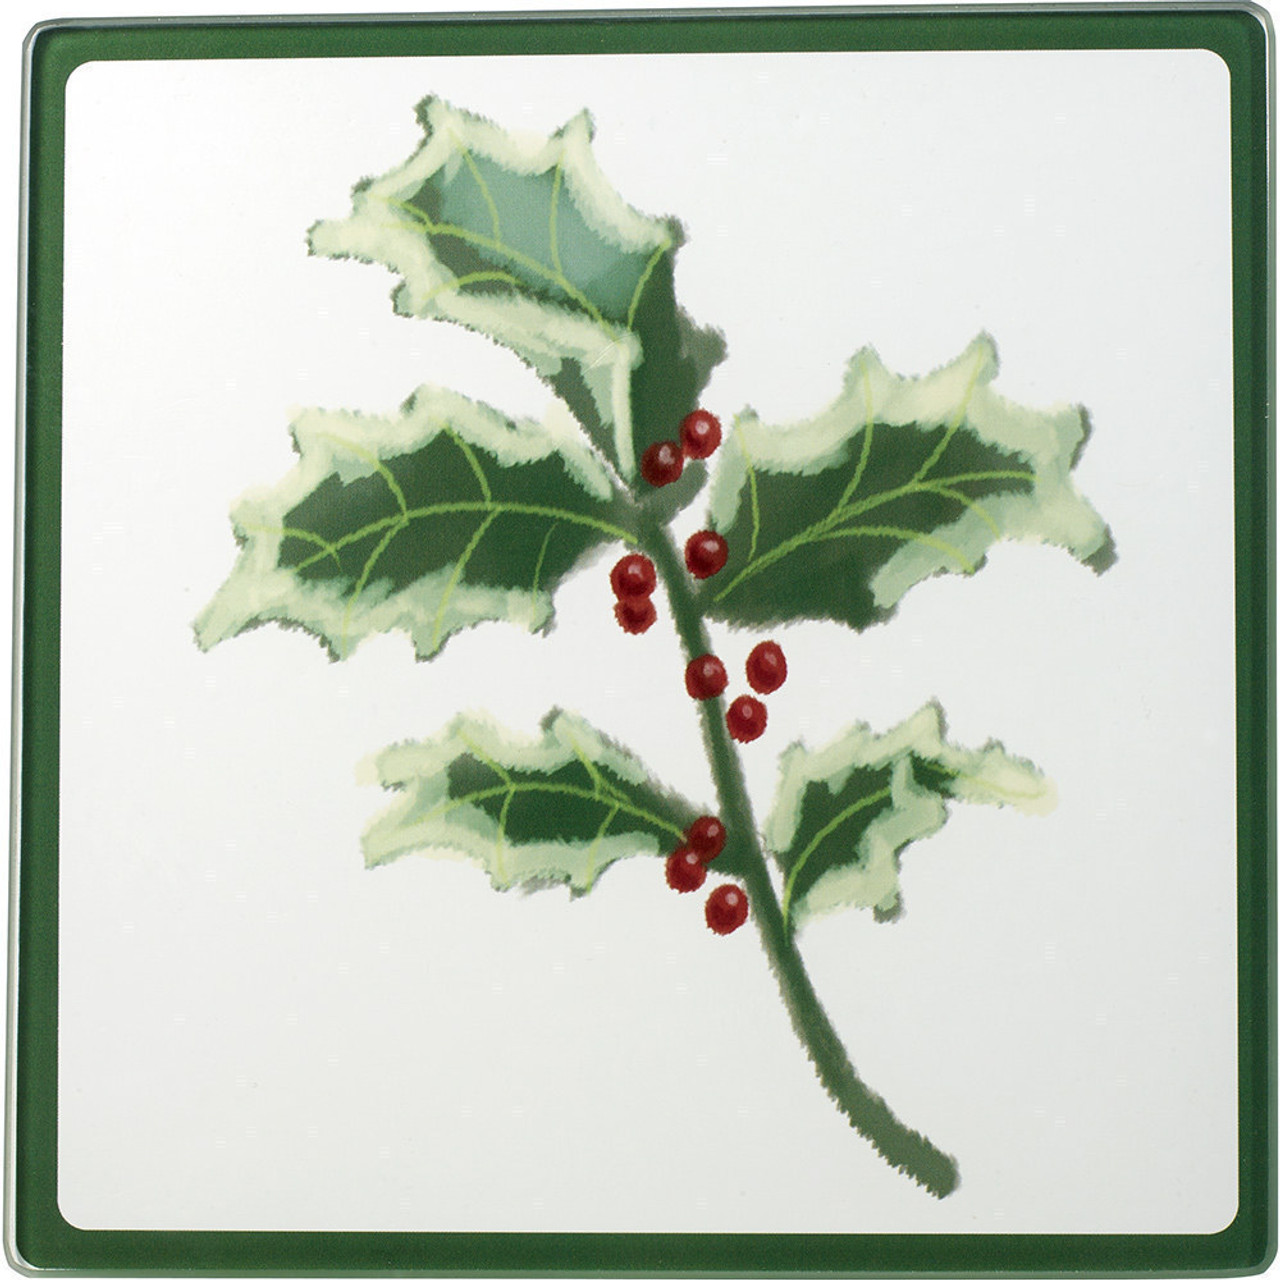 Celebrations Christmas Holly Glass Cutting Board Trivet 171527